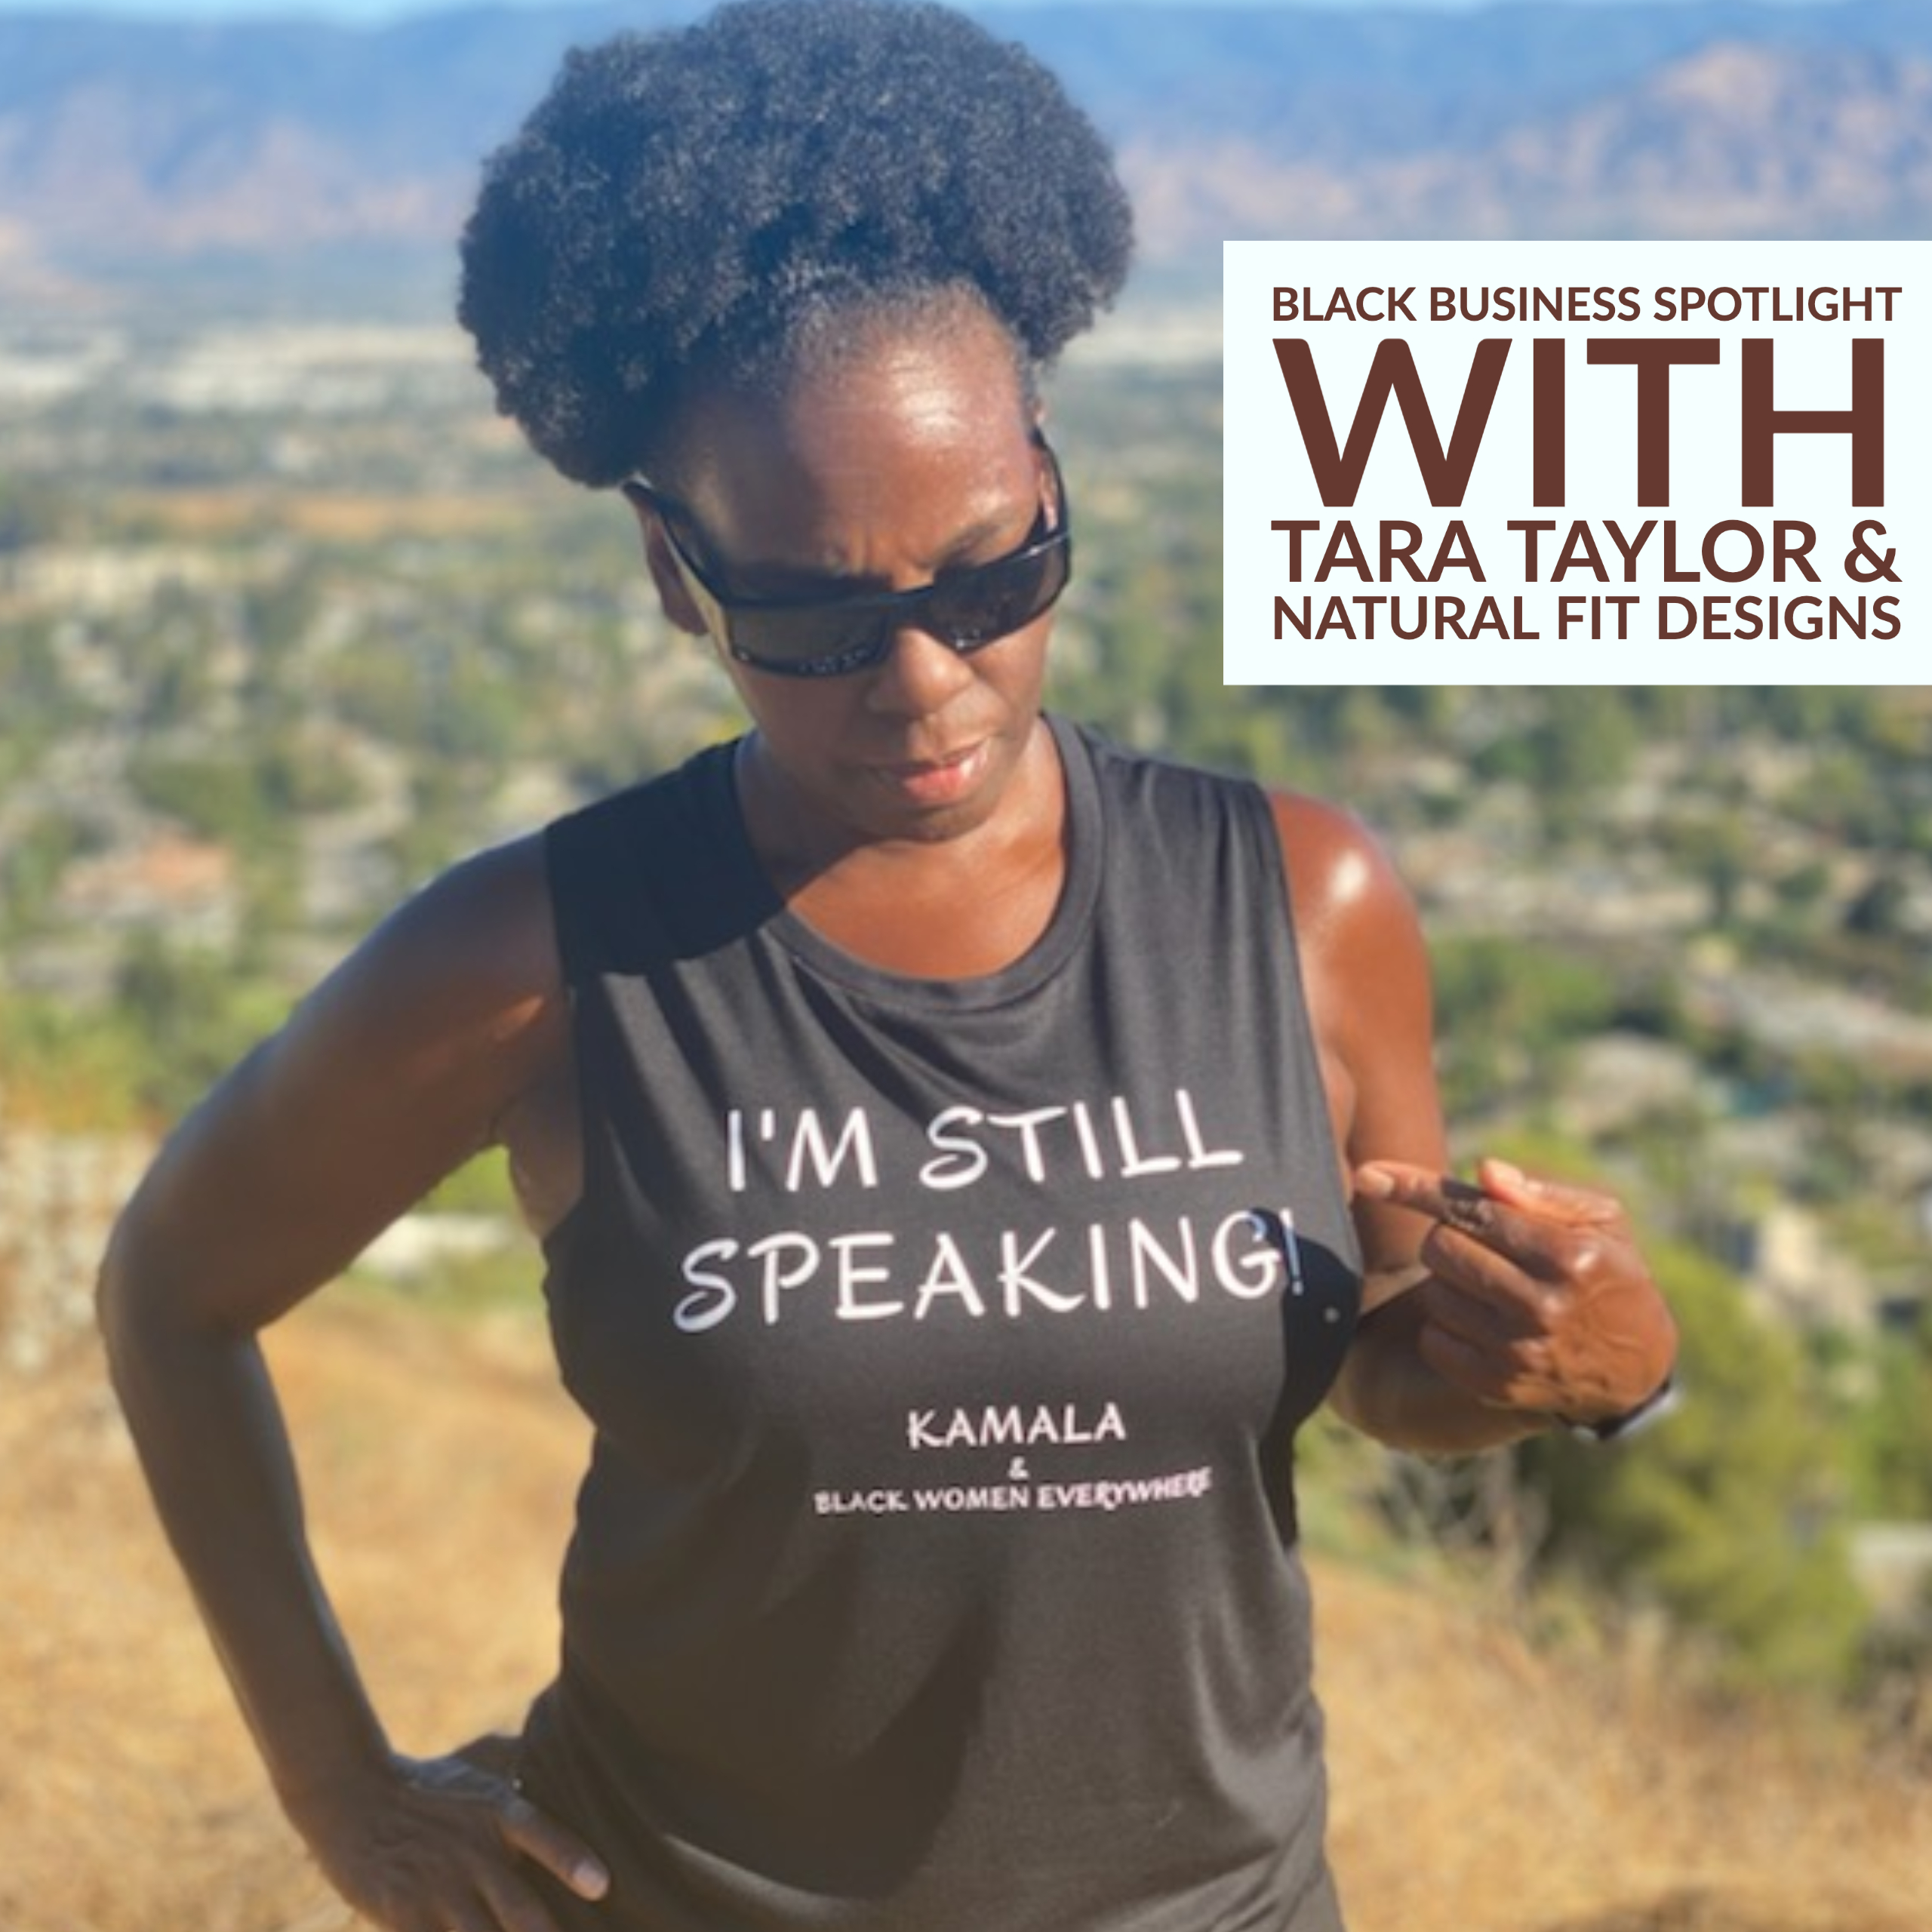 Black Business Spotlight with Natural Fit Designs